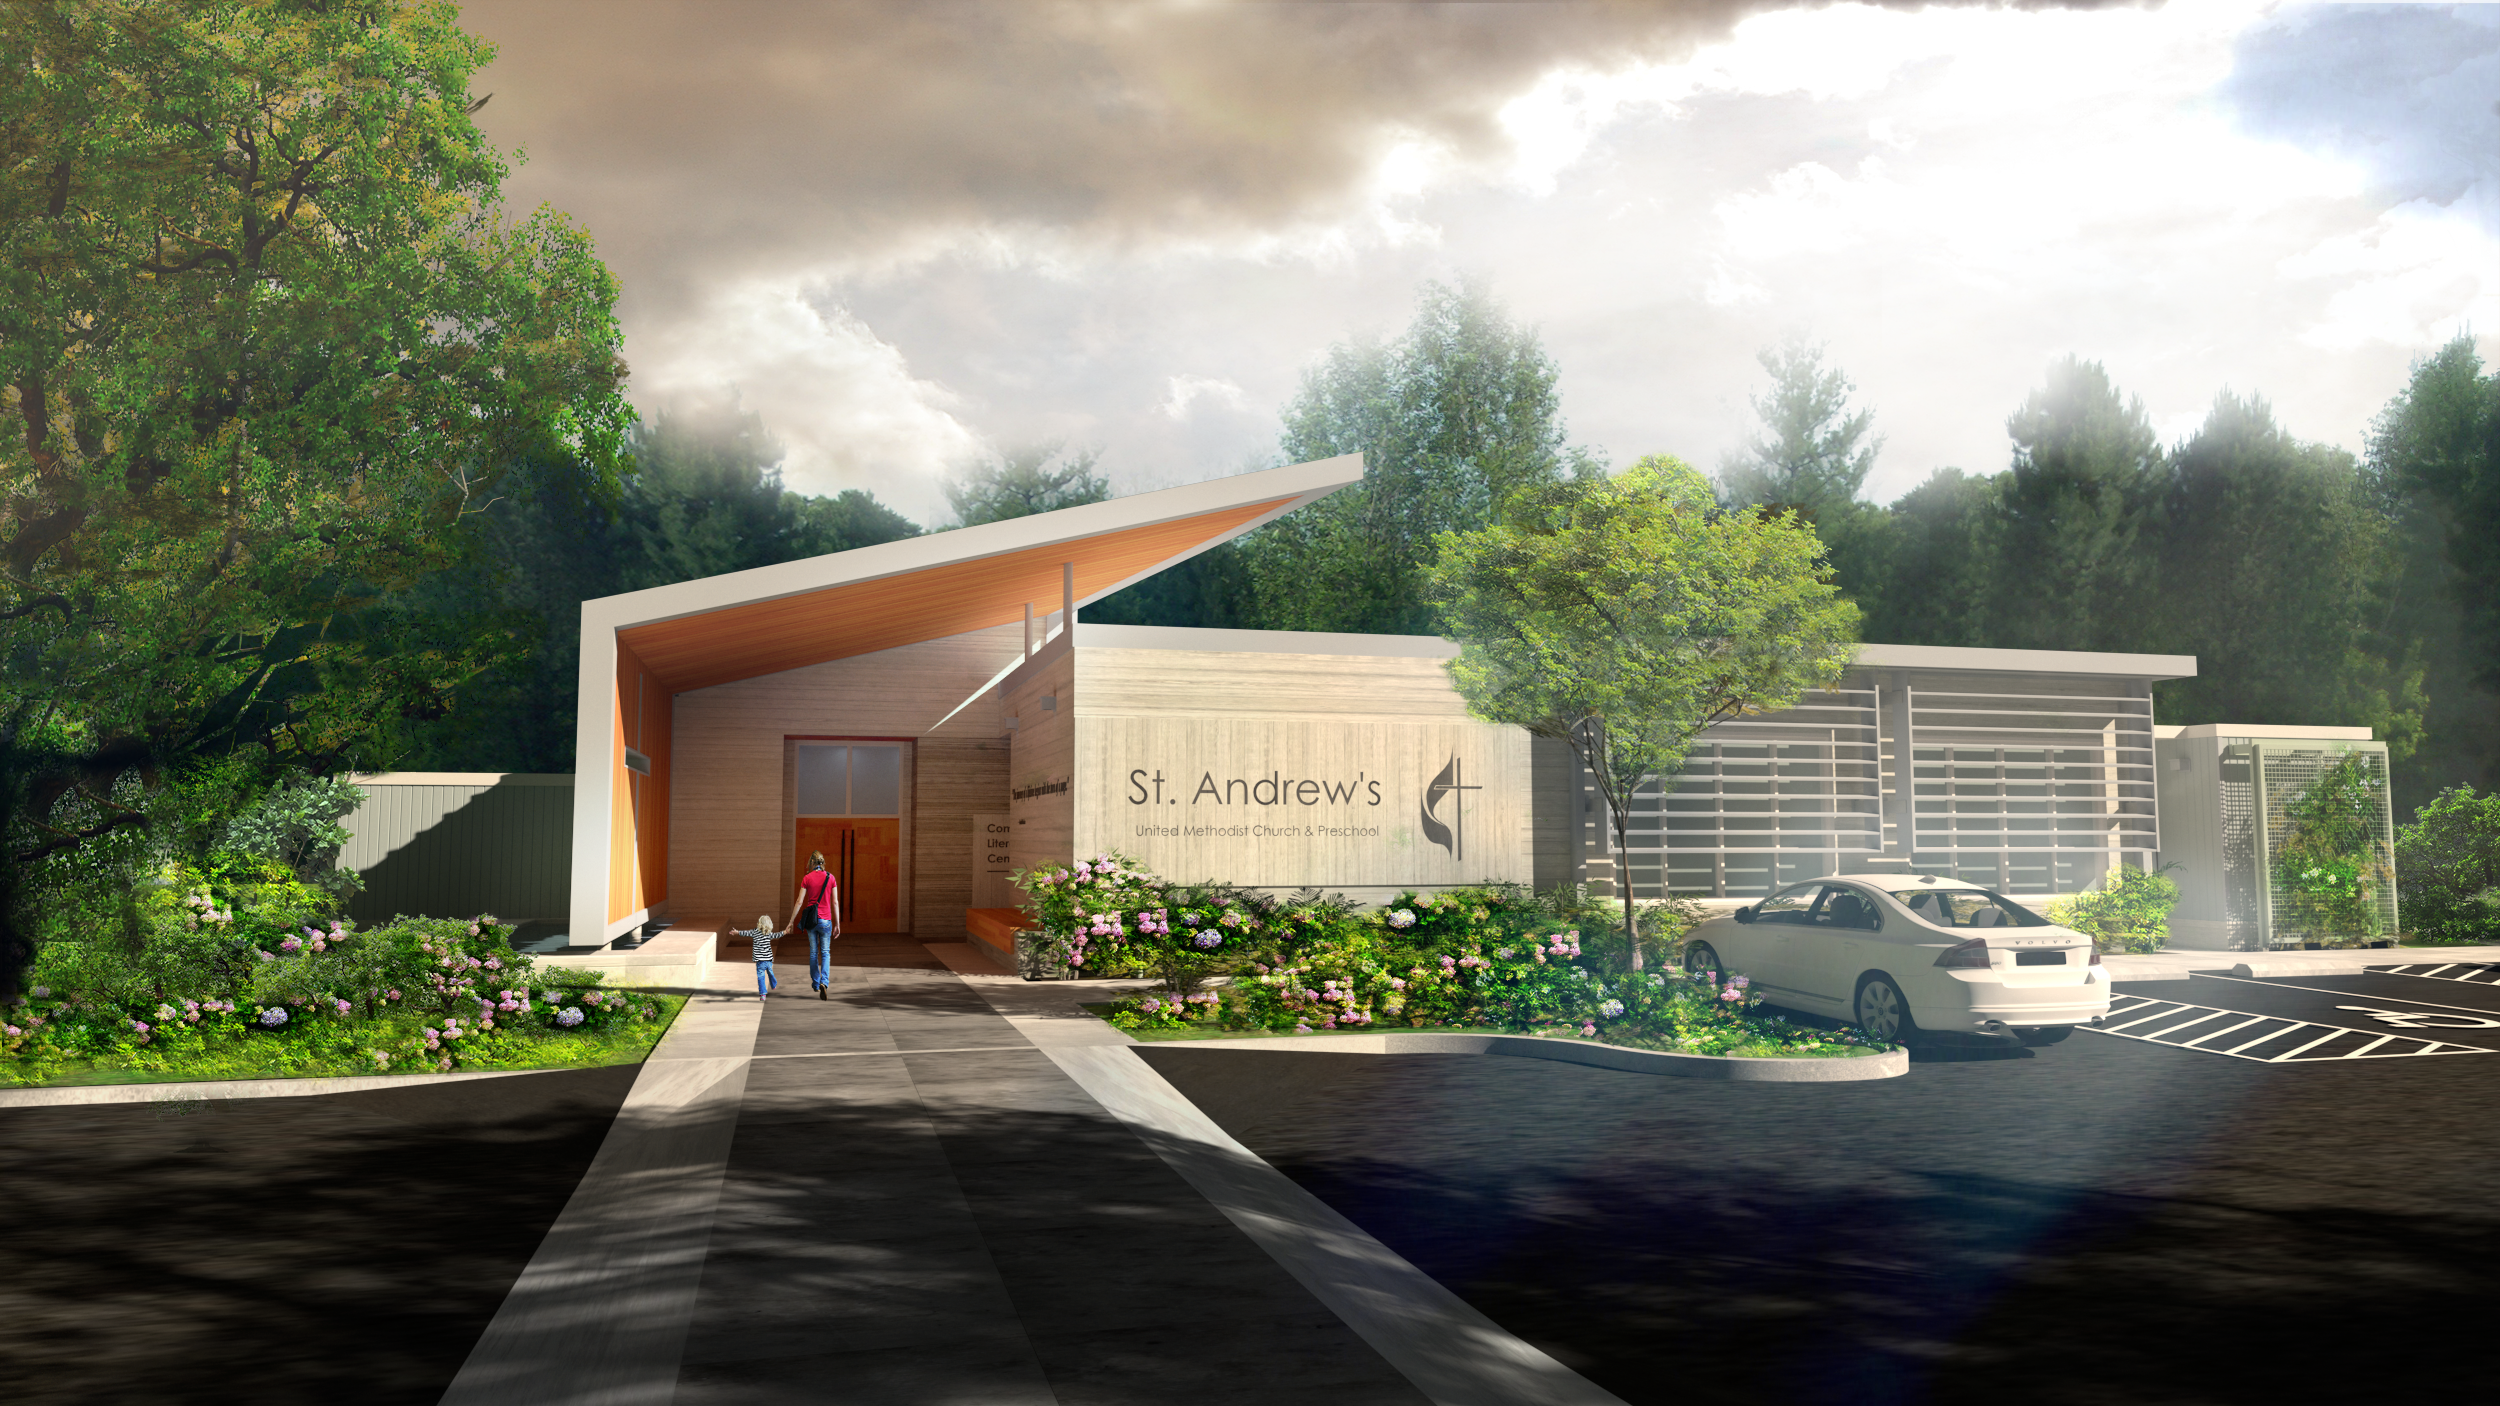 Exterior renderings for the proposed project designed by KMB architects.